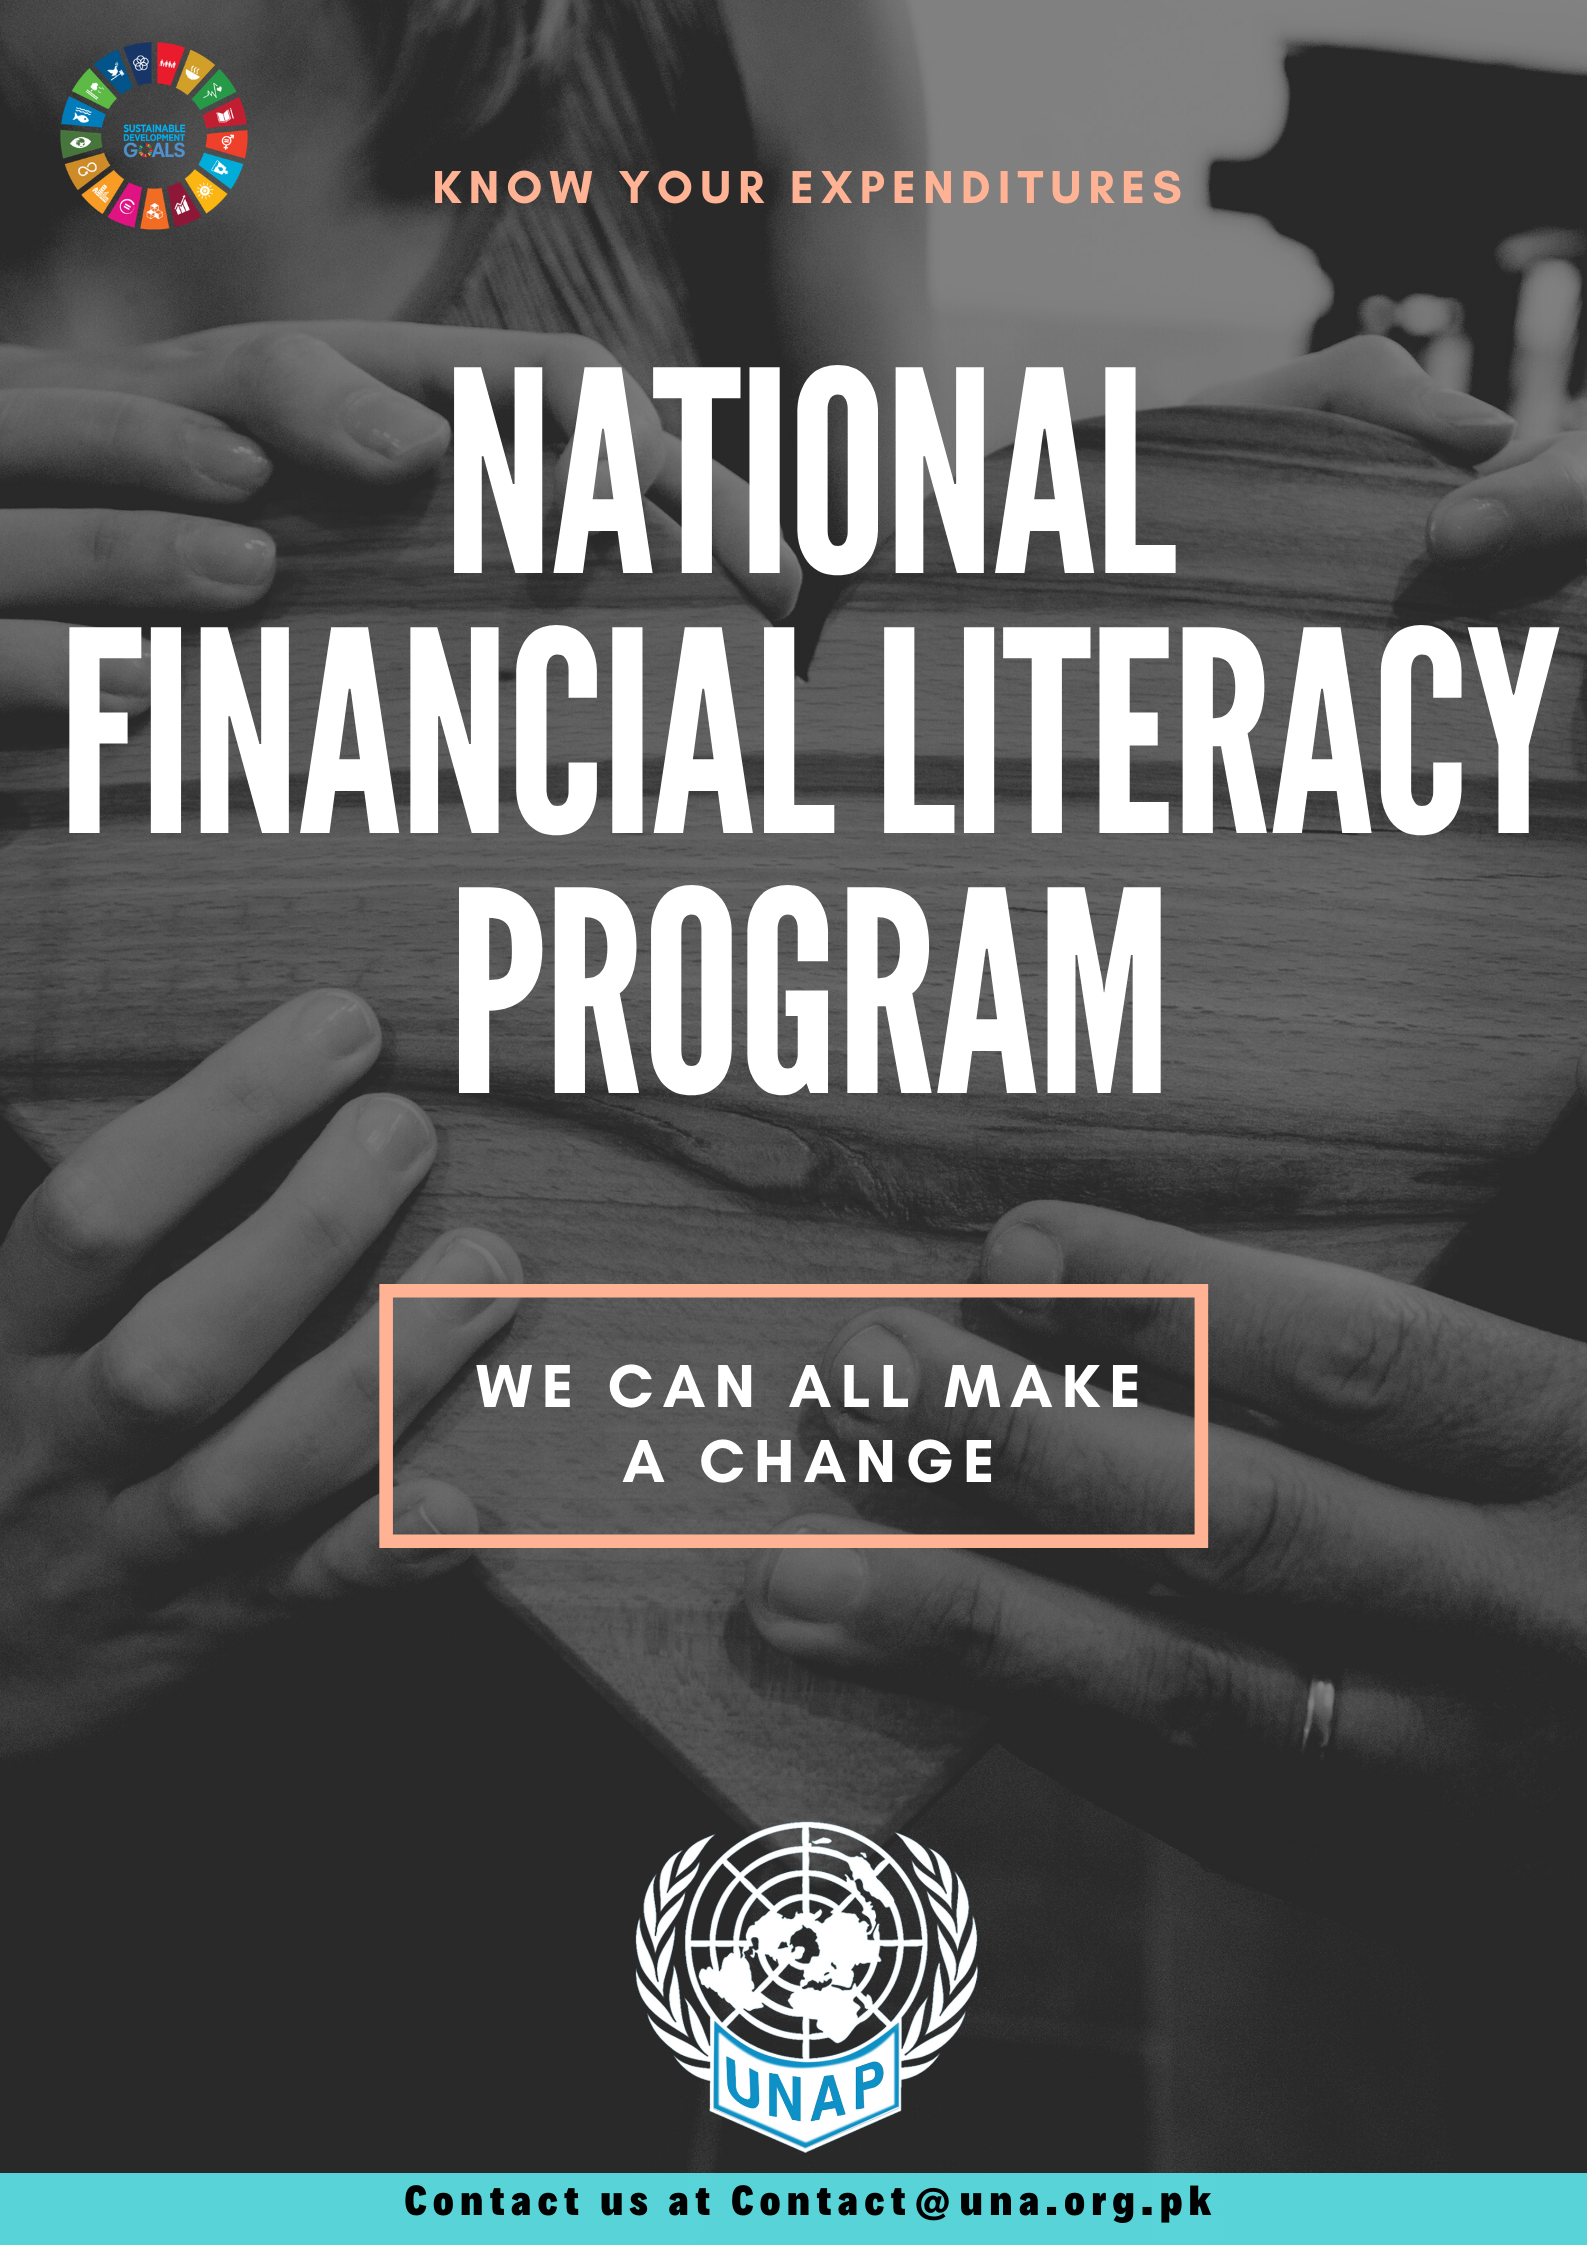 National Financial Literacy Program